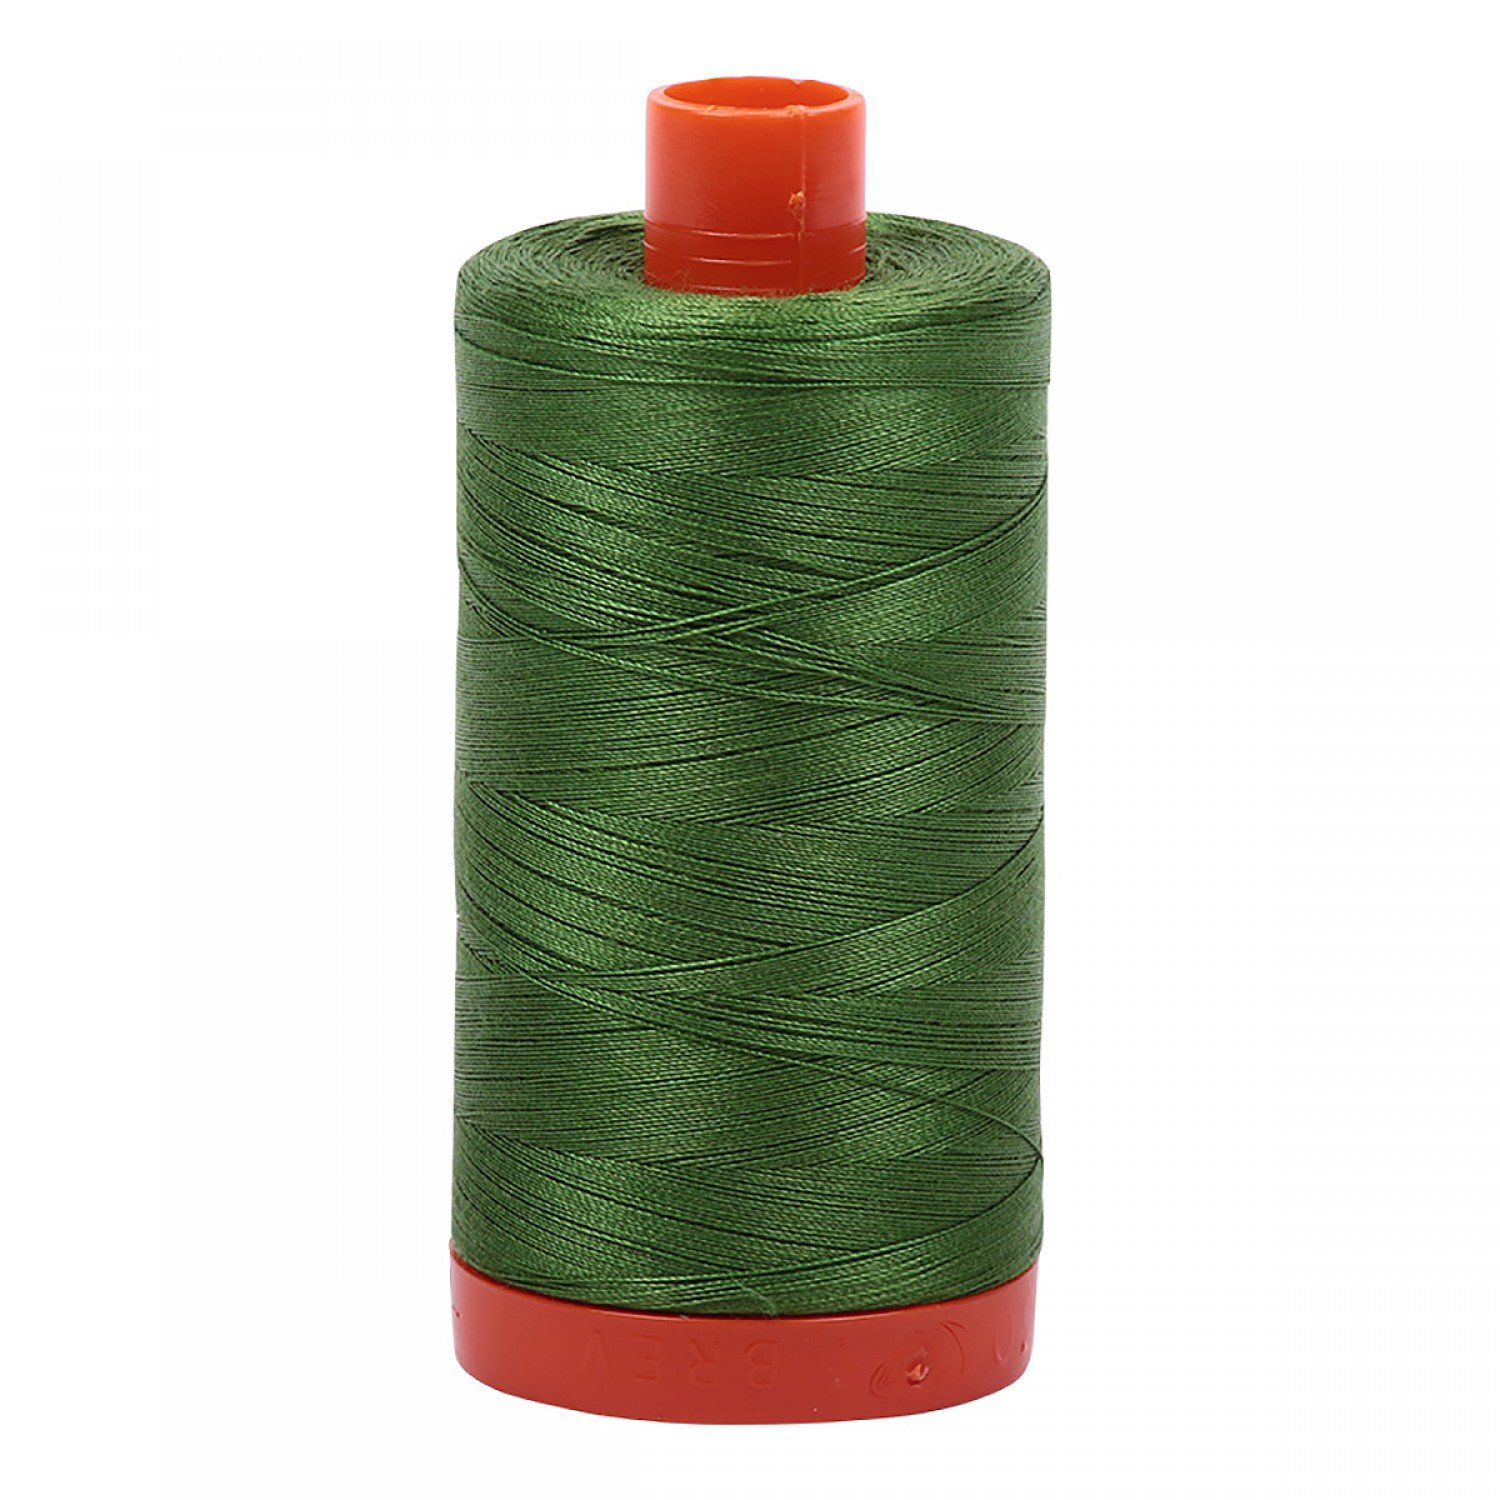 50 wt Aurifil - 5018 Dark Grass Green